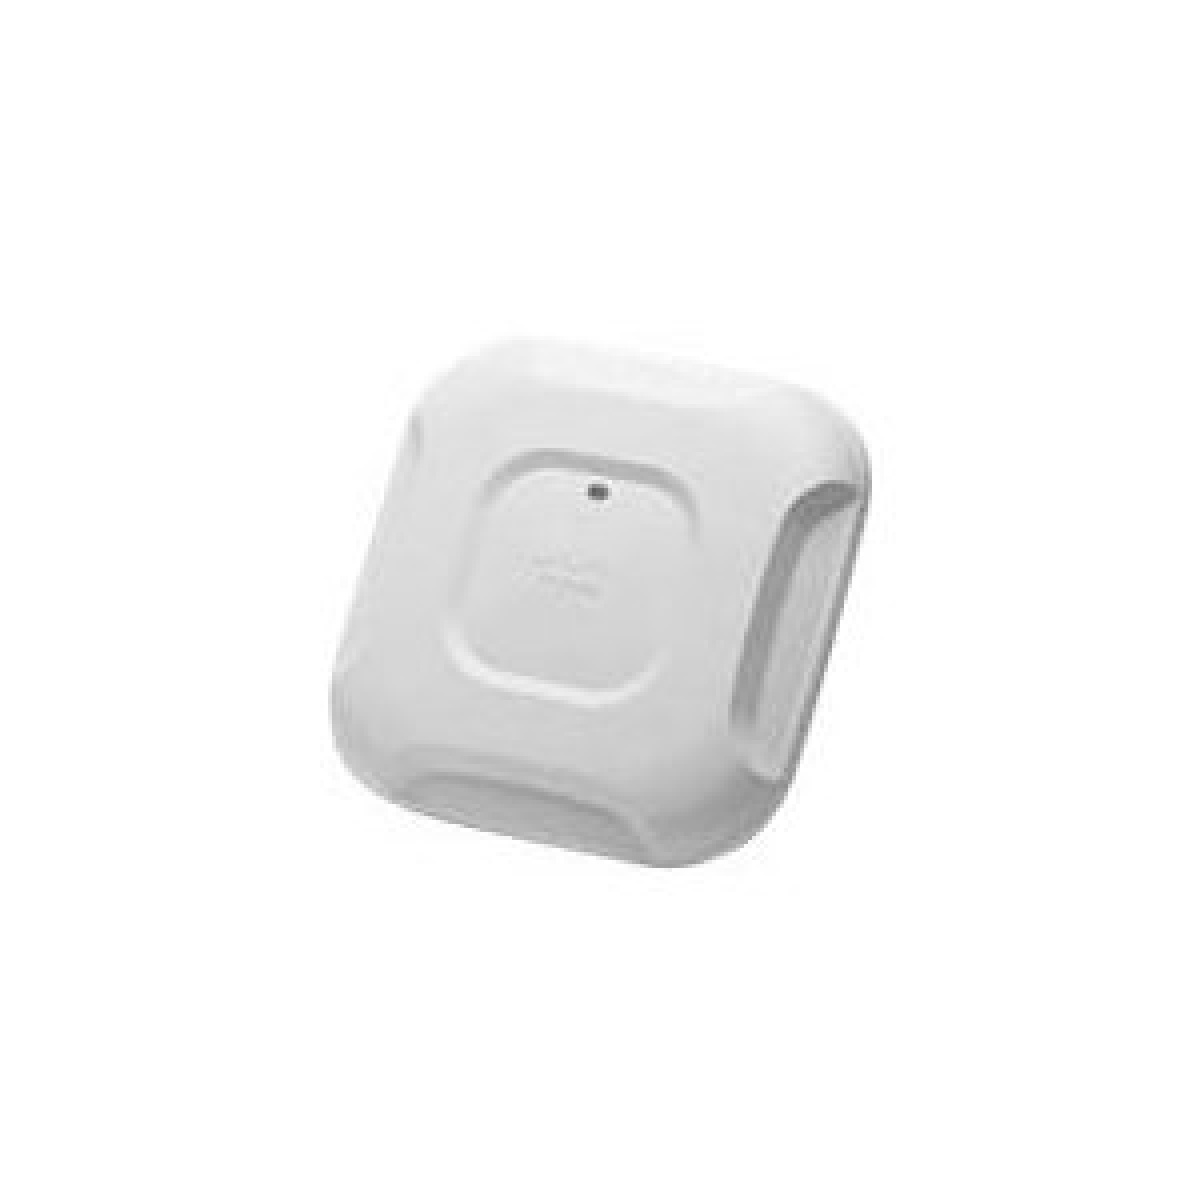 Access Point Aironet 3702i